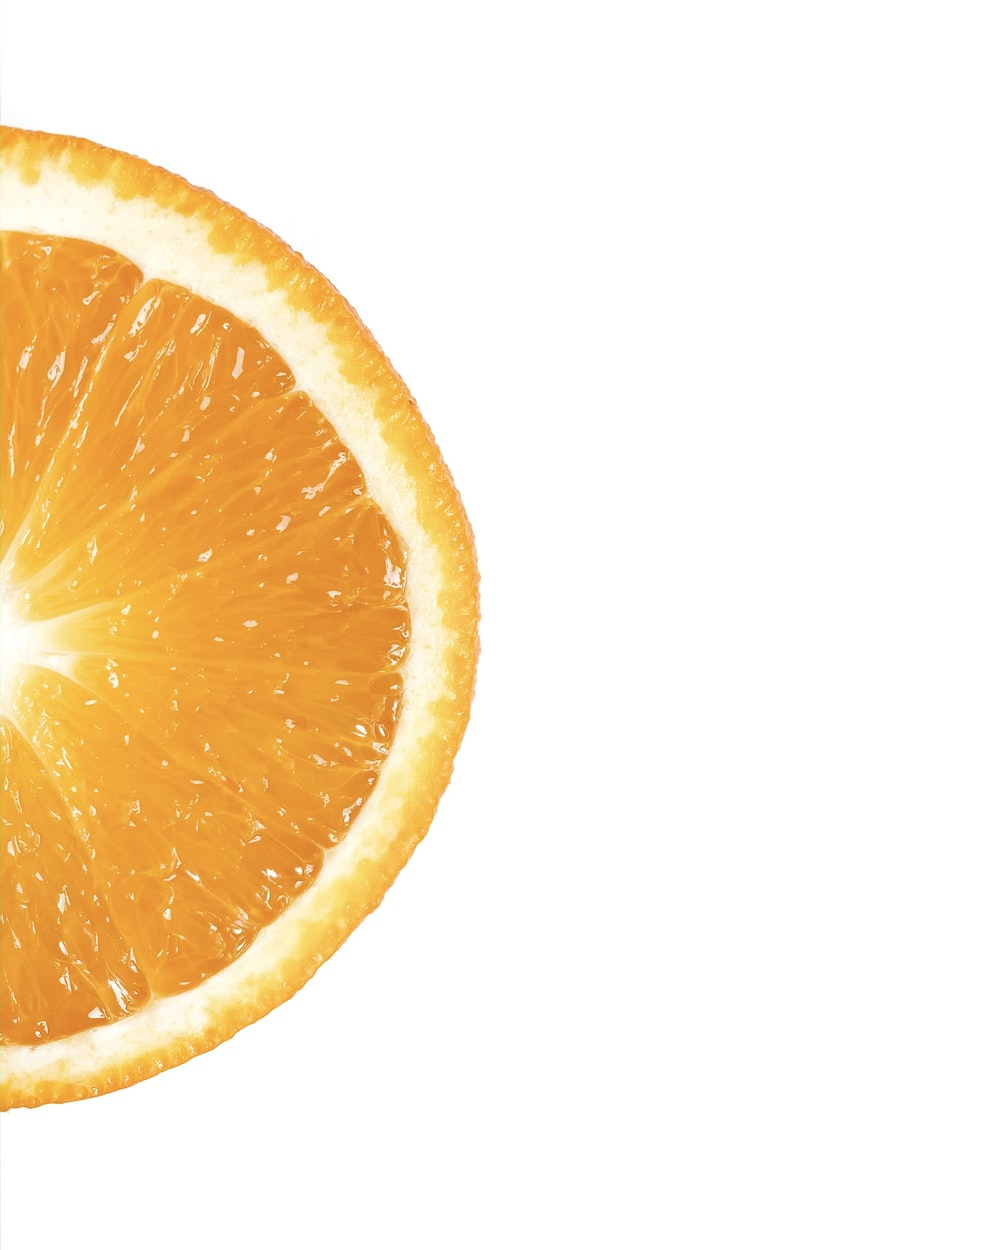 sliced orange fruit with white background